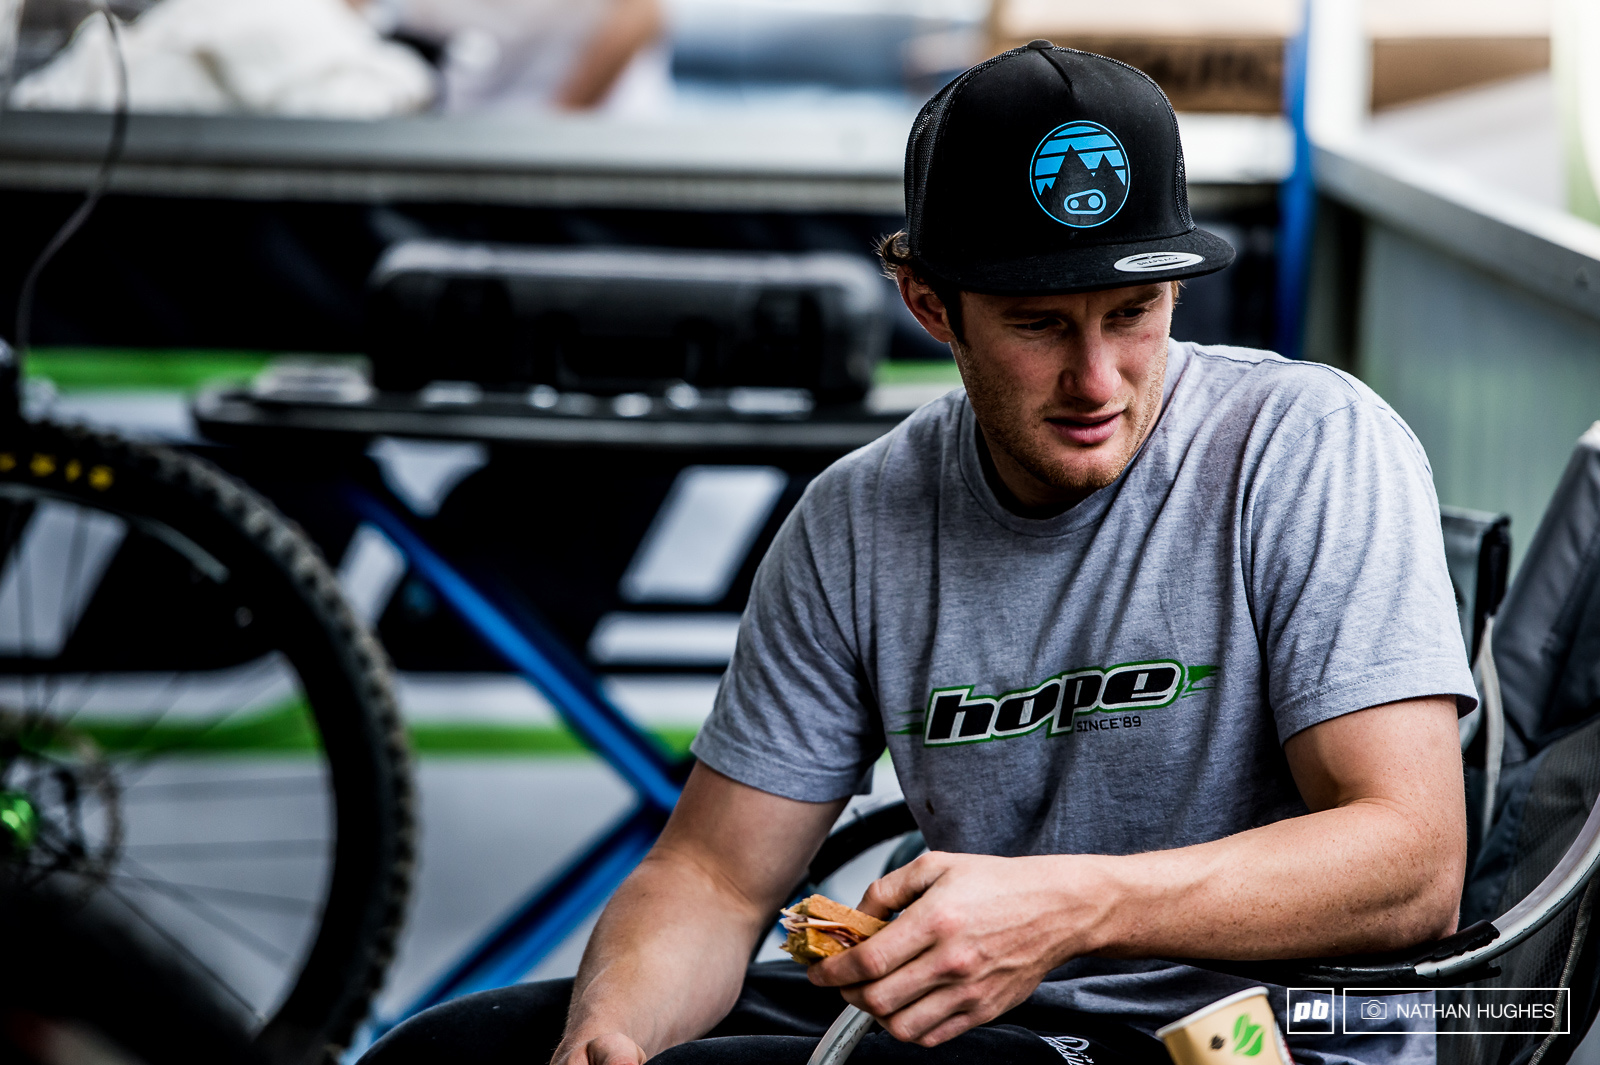 Is Adam Brayton on the edge of something big Let s not jinx him with speculation but hopefully with enough ham sandwiches he might be able pull out another heroic result here in Leogang.